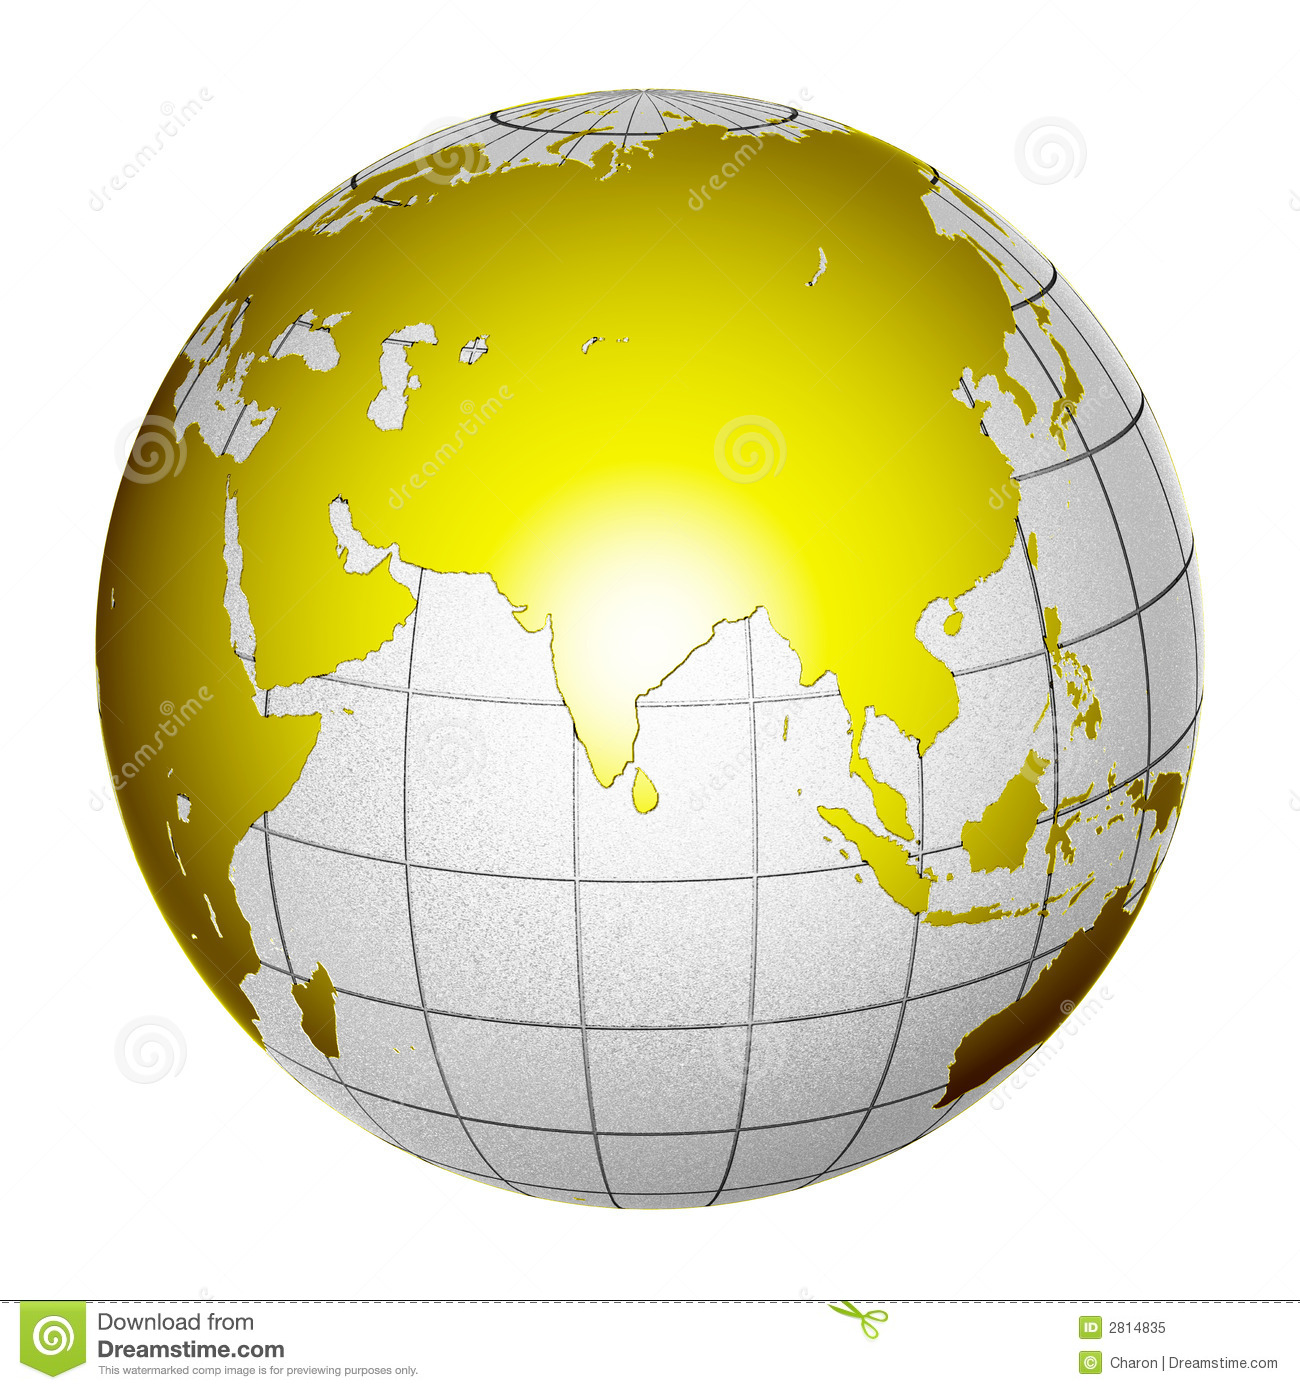 Planet globe earth 3d isolated stock illustration illustration of planet globe earth 3d isolated india core gumiabroncs Image collections